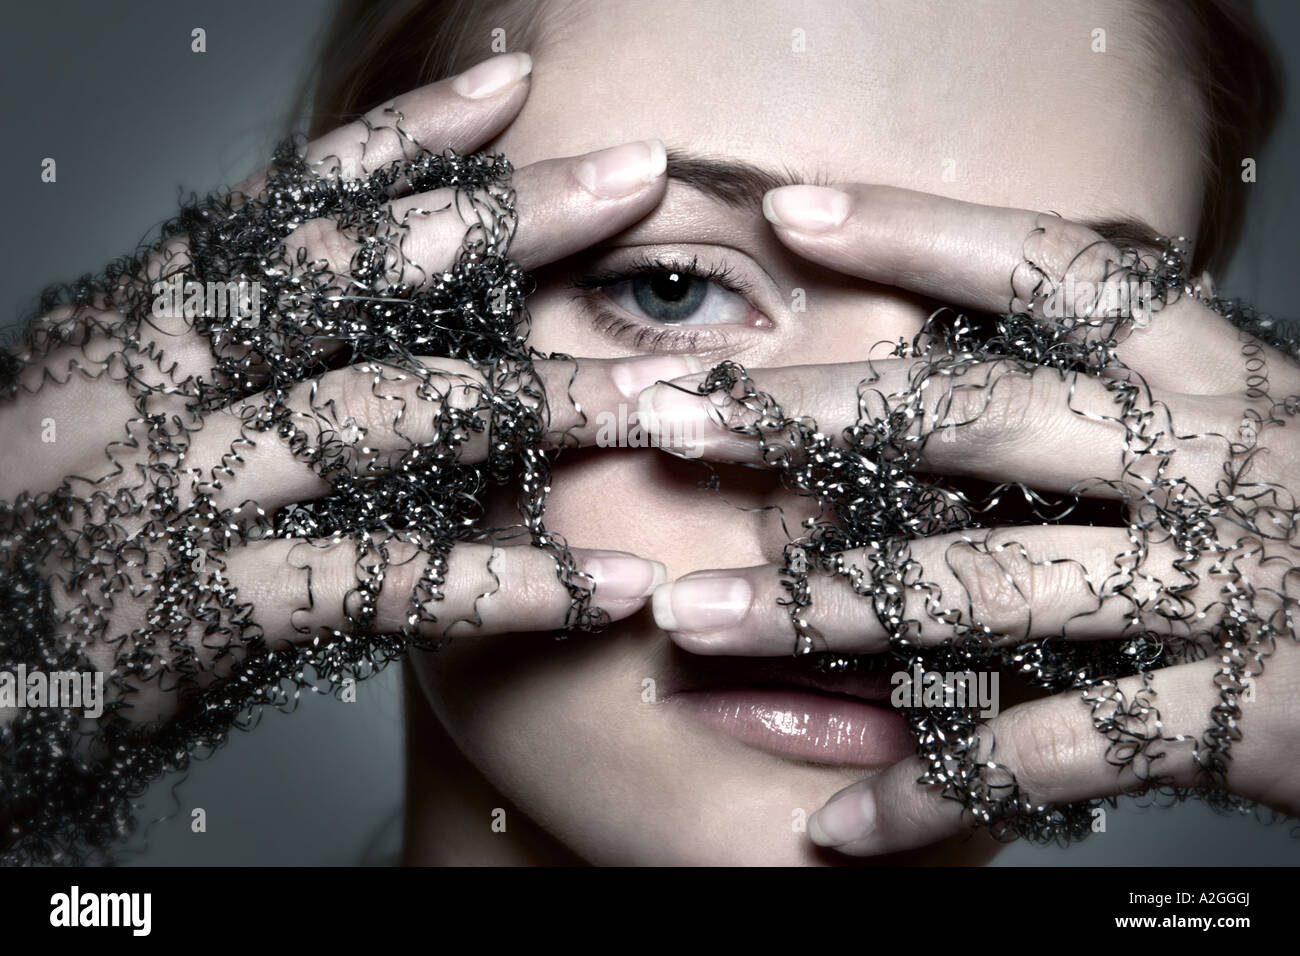 1217498 indoor studio young woman 25 30 brunette hand hands wire wires shavings shaving glove gloves symbol touch - Stock Image